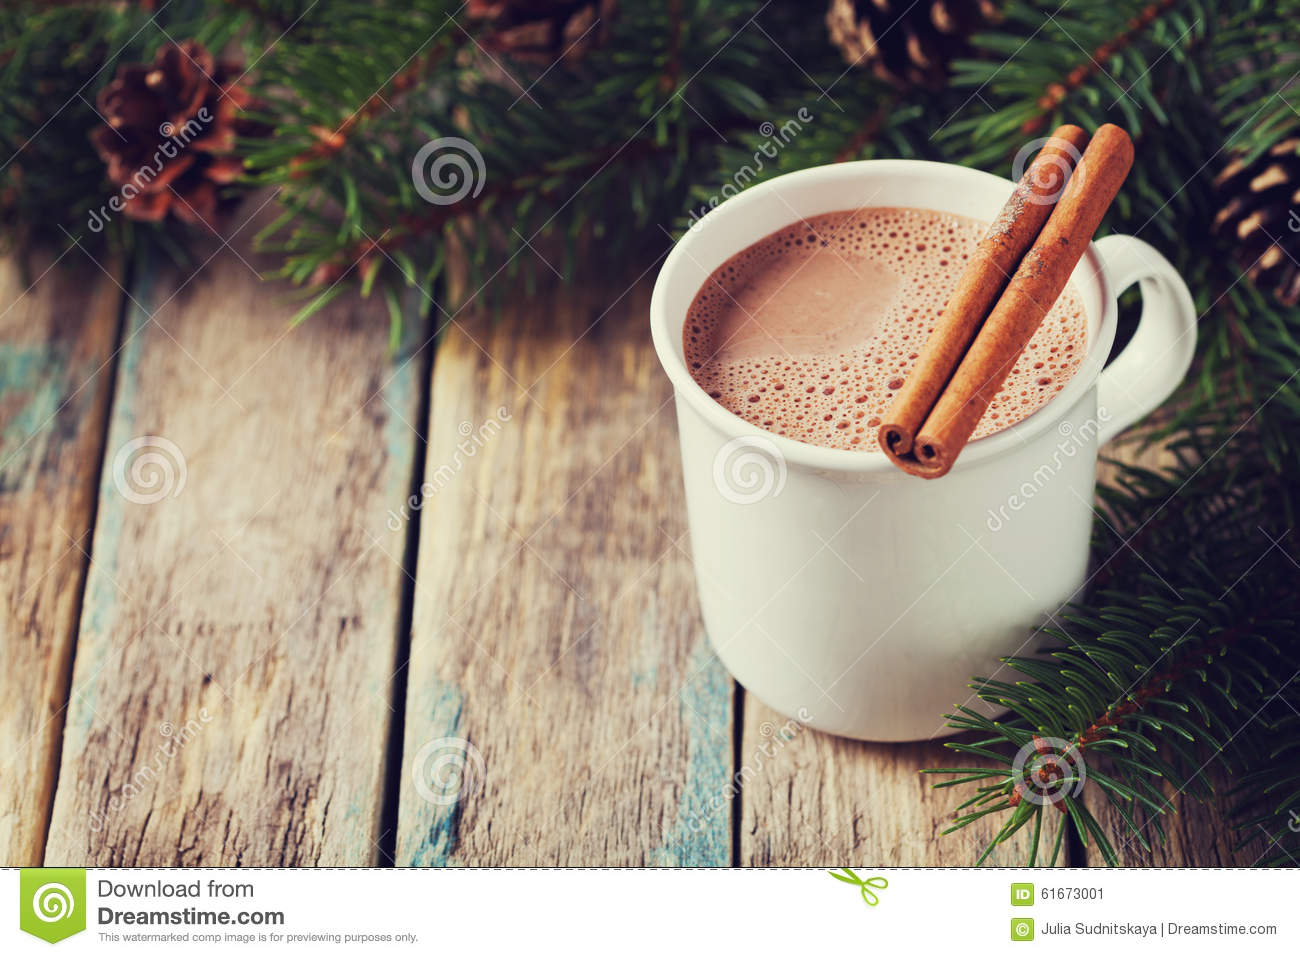 Falling Snow Wallpaper Download Tasse De Cacao Chaud Ou De Chocolat Chaud Sur Le Fond En